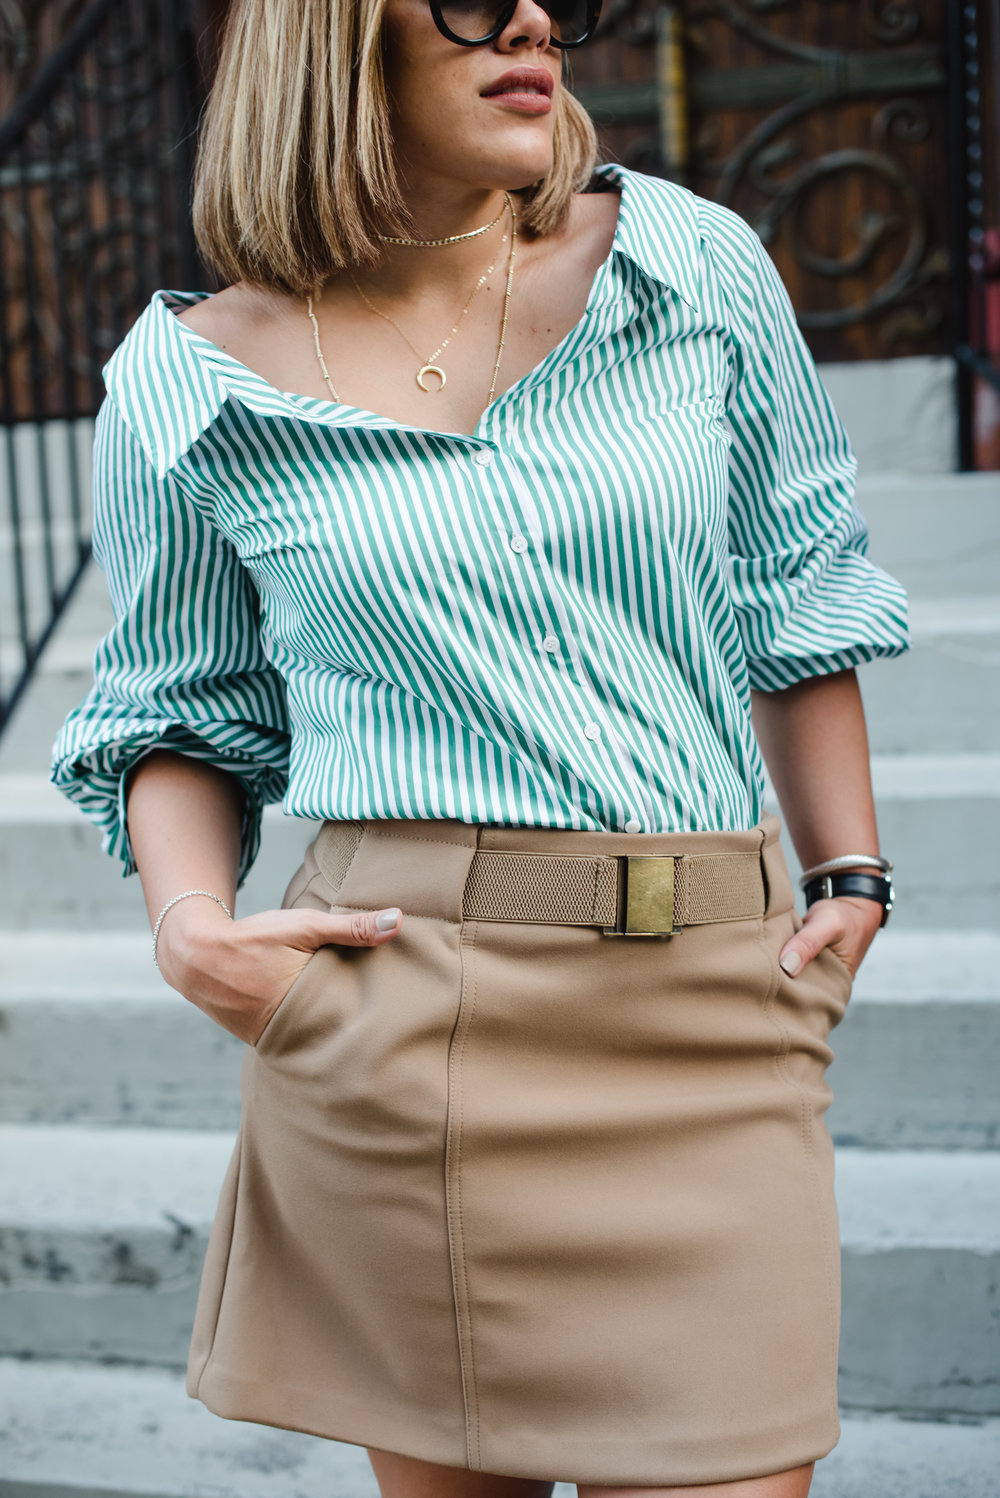 how-to-wear-zara-off-the-shoulder-blouse-top-celine-shadow-sunglasses-who-what-wear-for-target-collection-shoes-latina-new-york-city-fashion-blogger-style-operator-summer-fashion.jpg